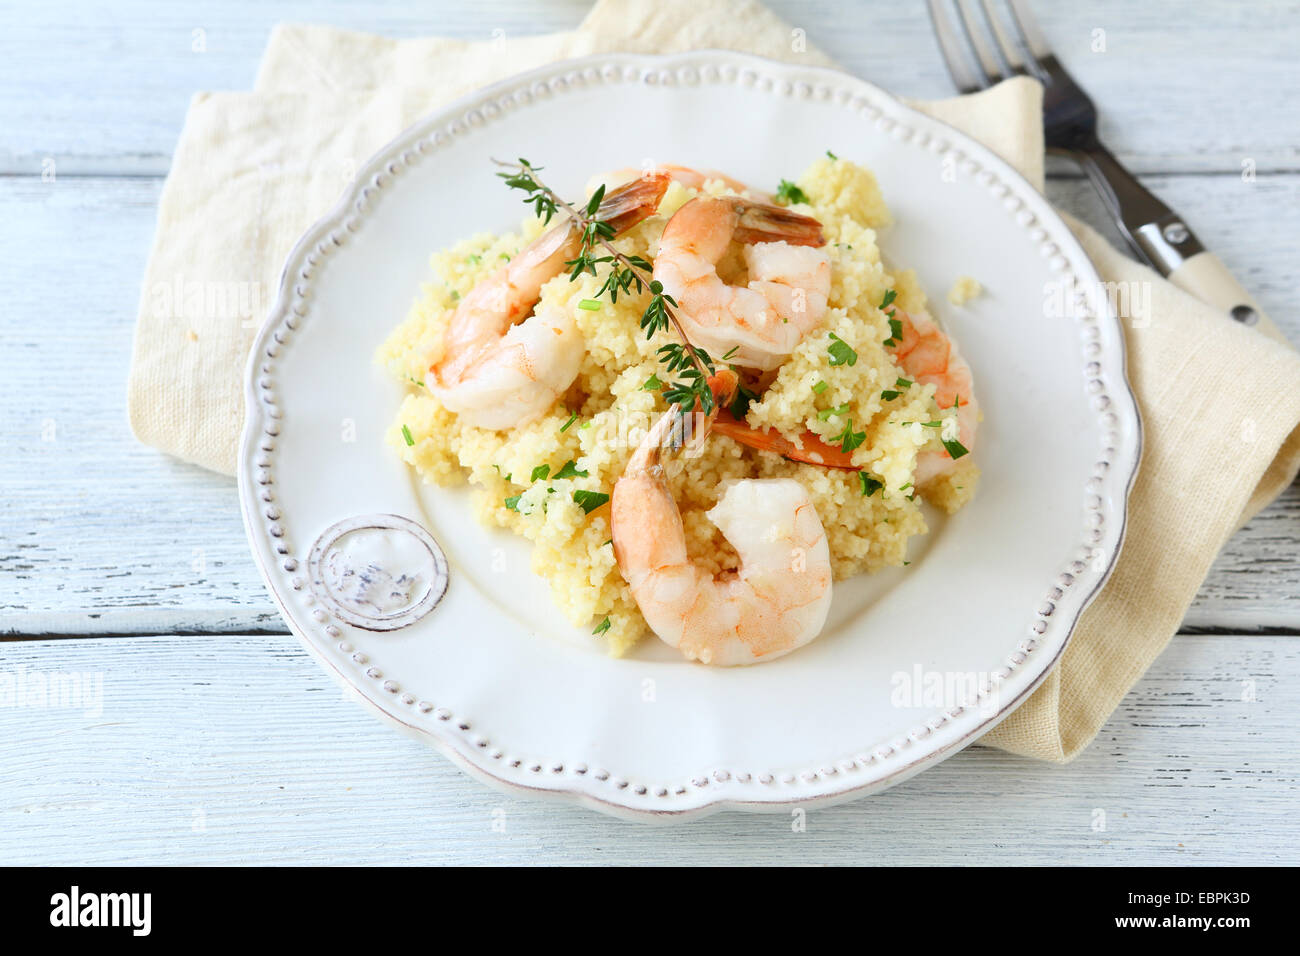 Couscous with seafood on a plate, tasty food - Stock Image